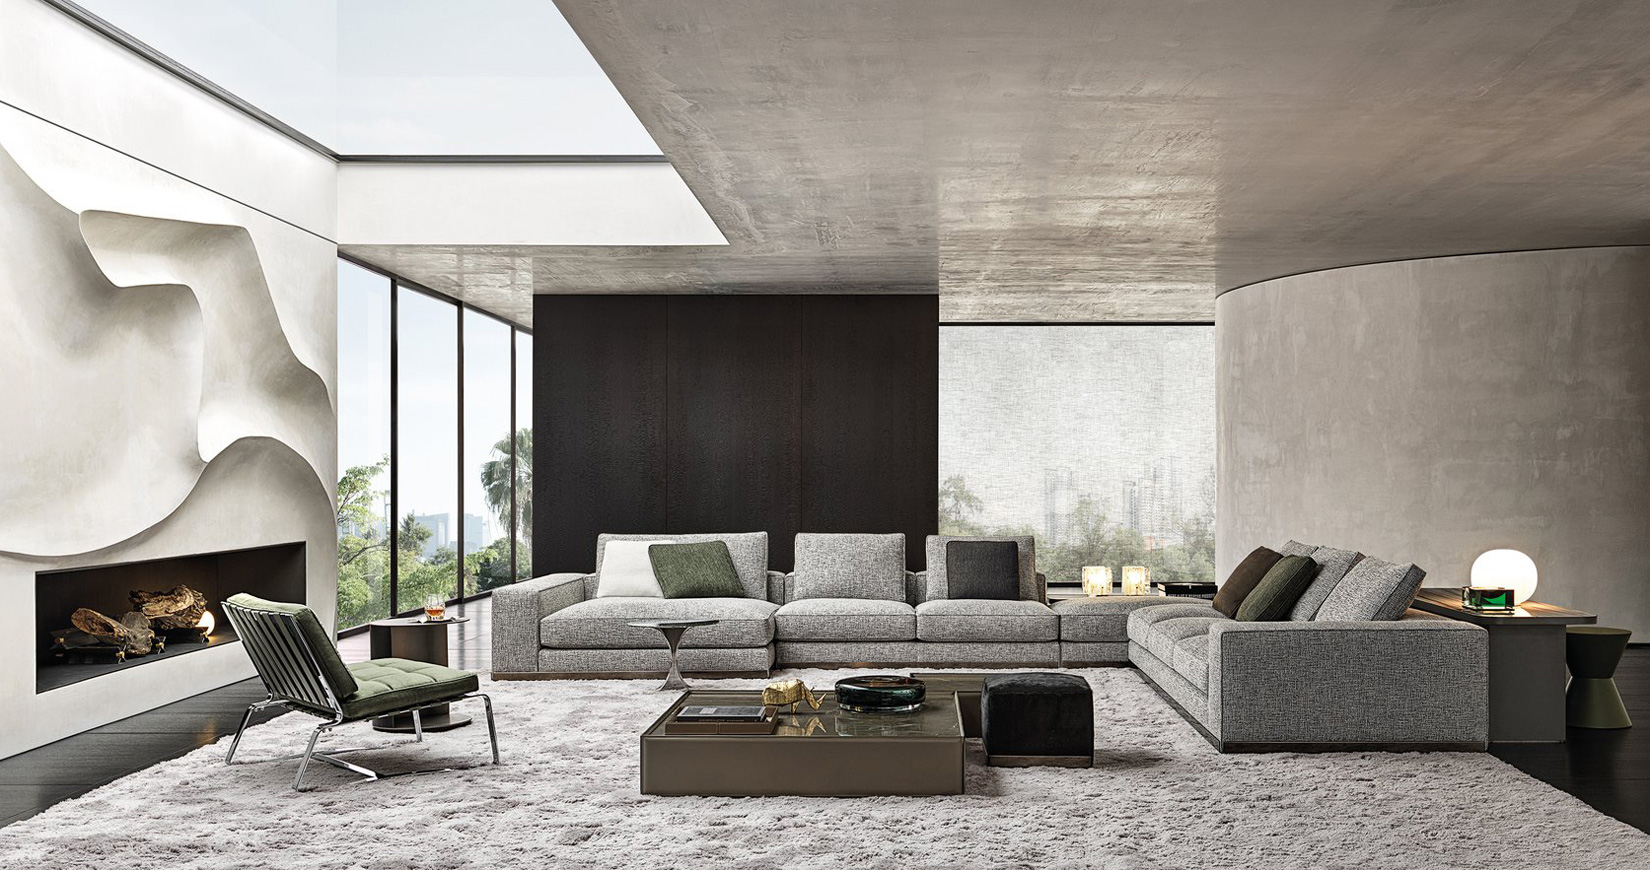 West from Minotti